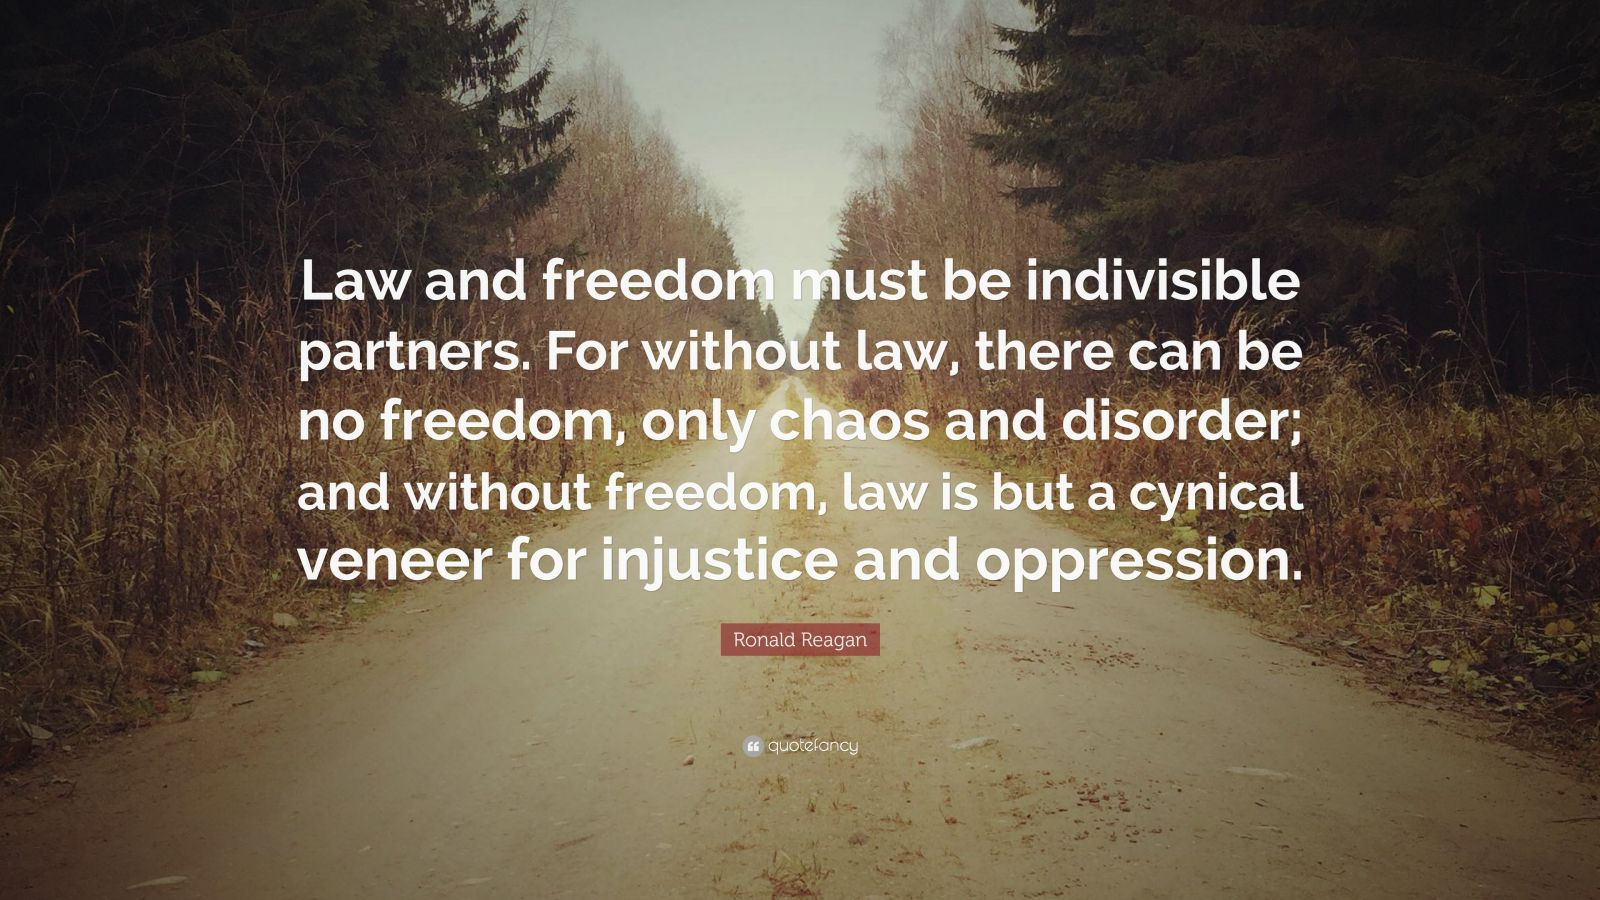 """Ronald Reagan Quote: """"Law and freedom must be indivisible partners. For without law, there can be no freedom, only choas and disorder; and without freedom, law is but a cynical veneer for injustice and oppression."""""""